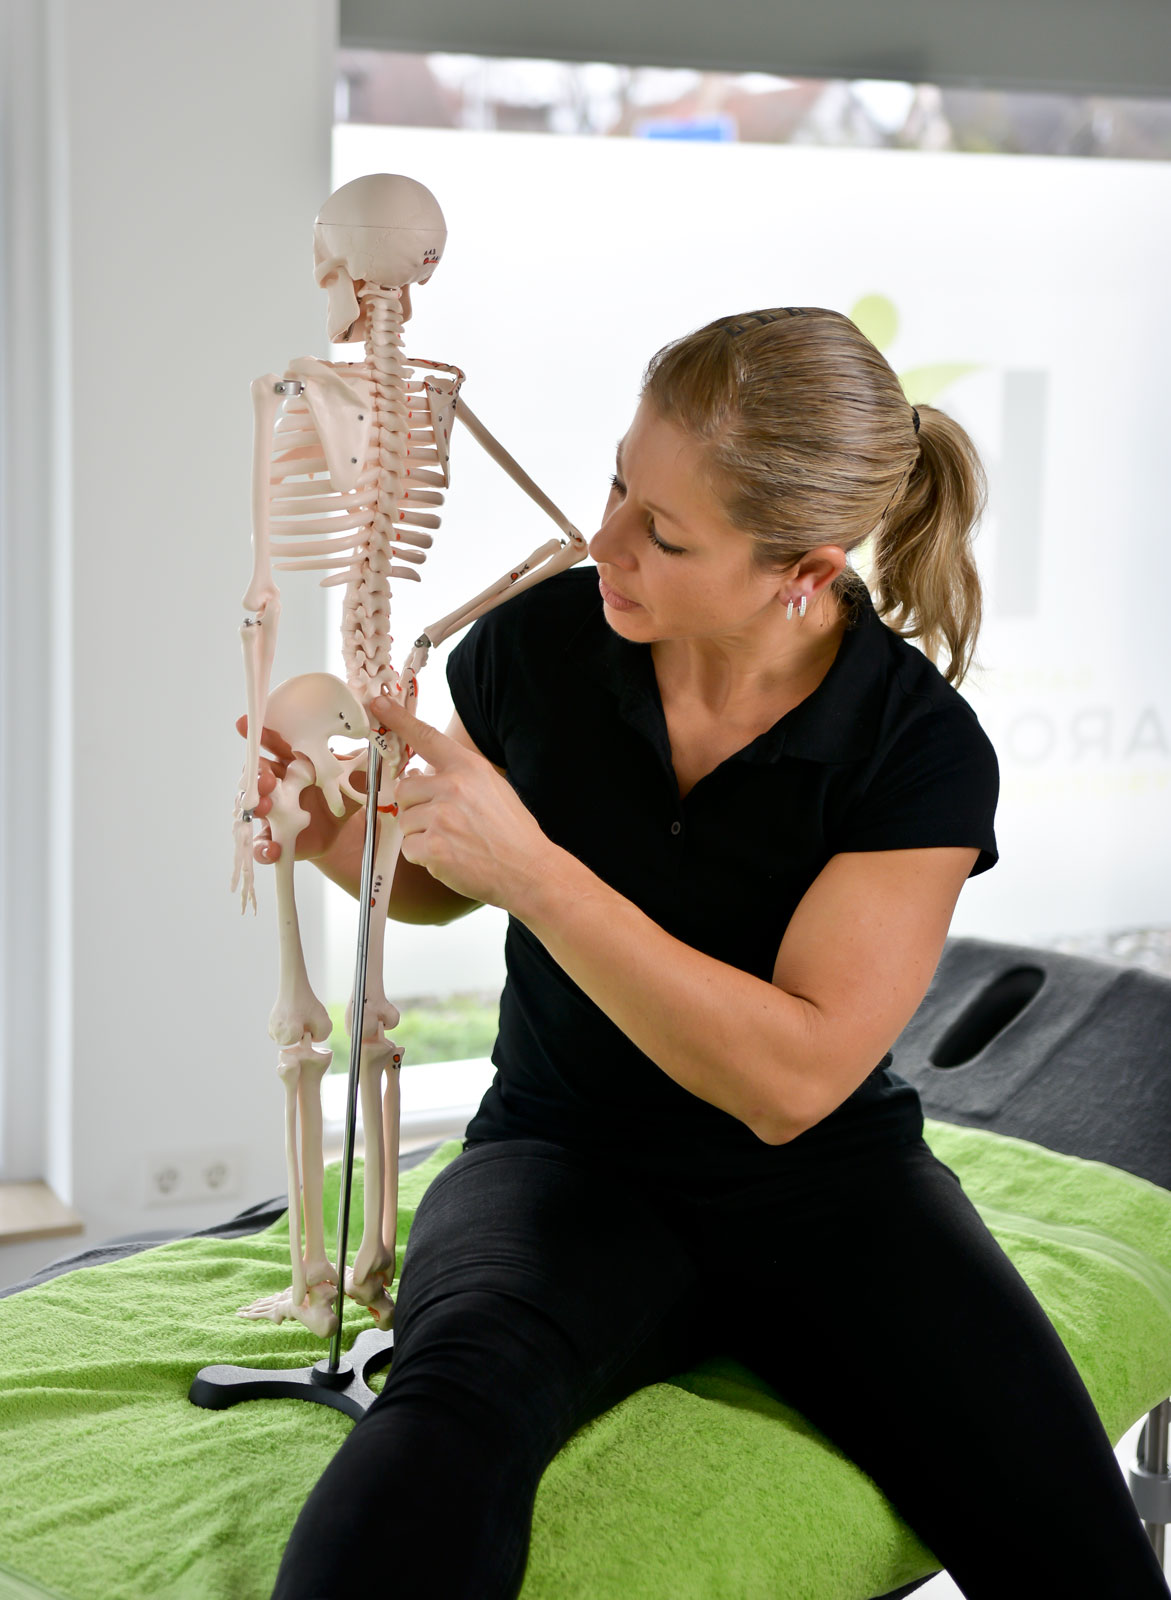 Physiotherapie in Nürtingen, Esslingen